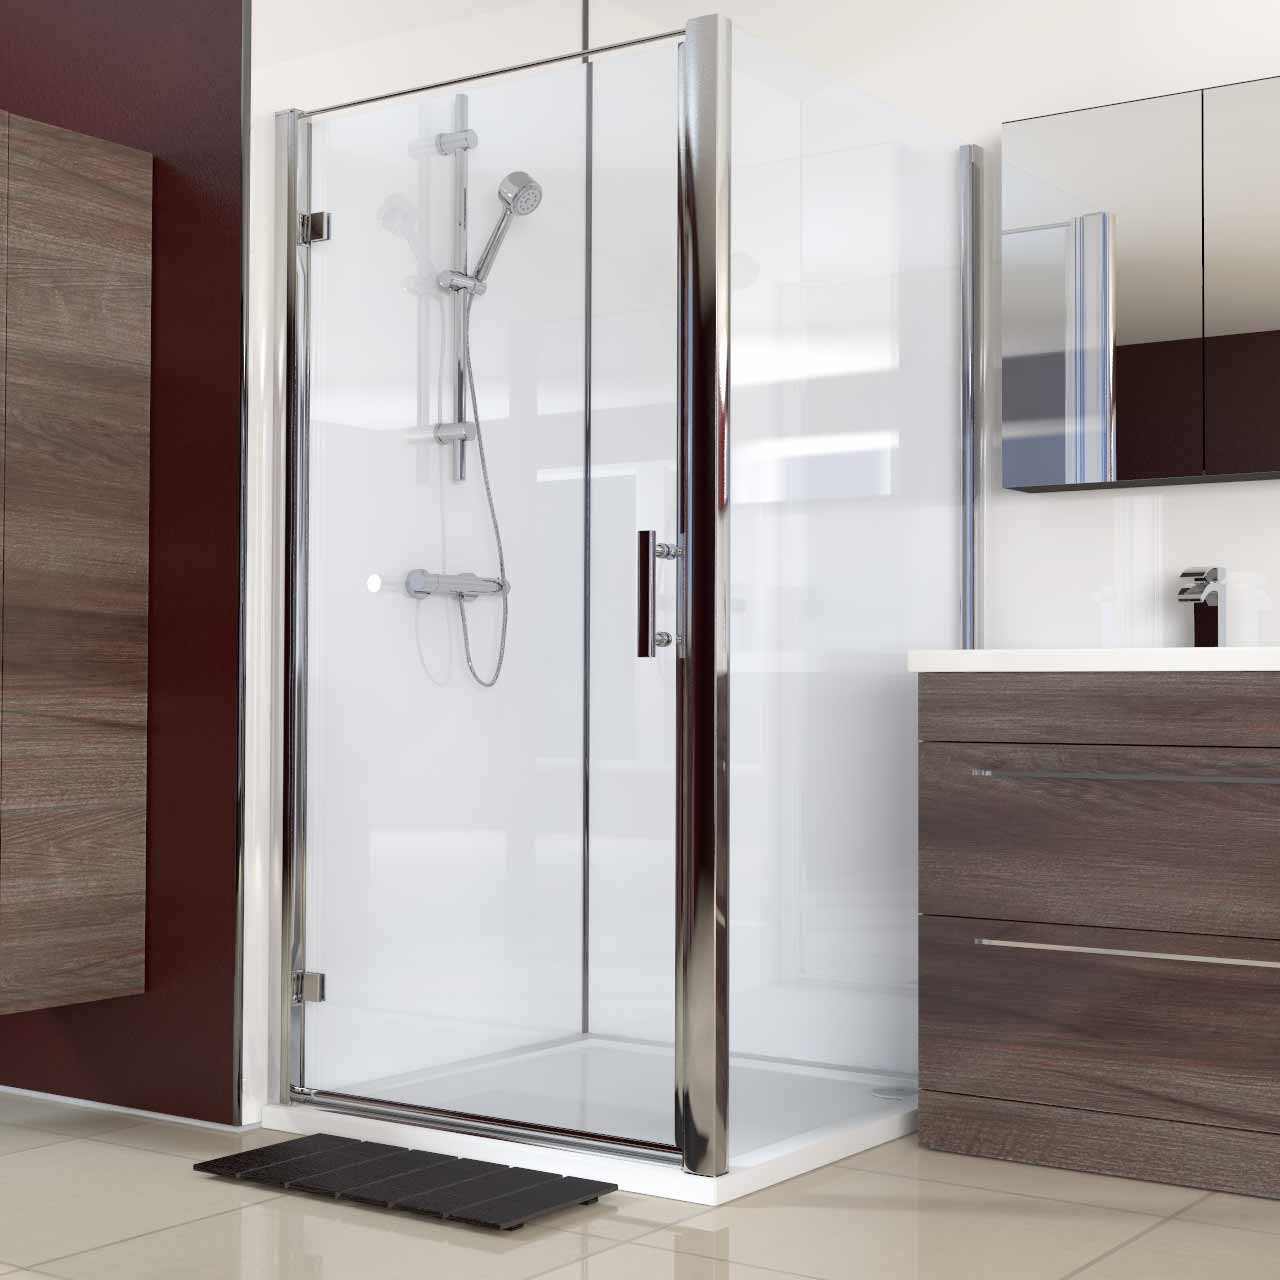 Series 6 1000mm x 1000mm Hinged Door Shower Enclosure